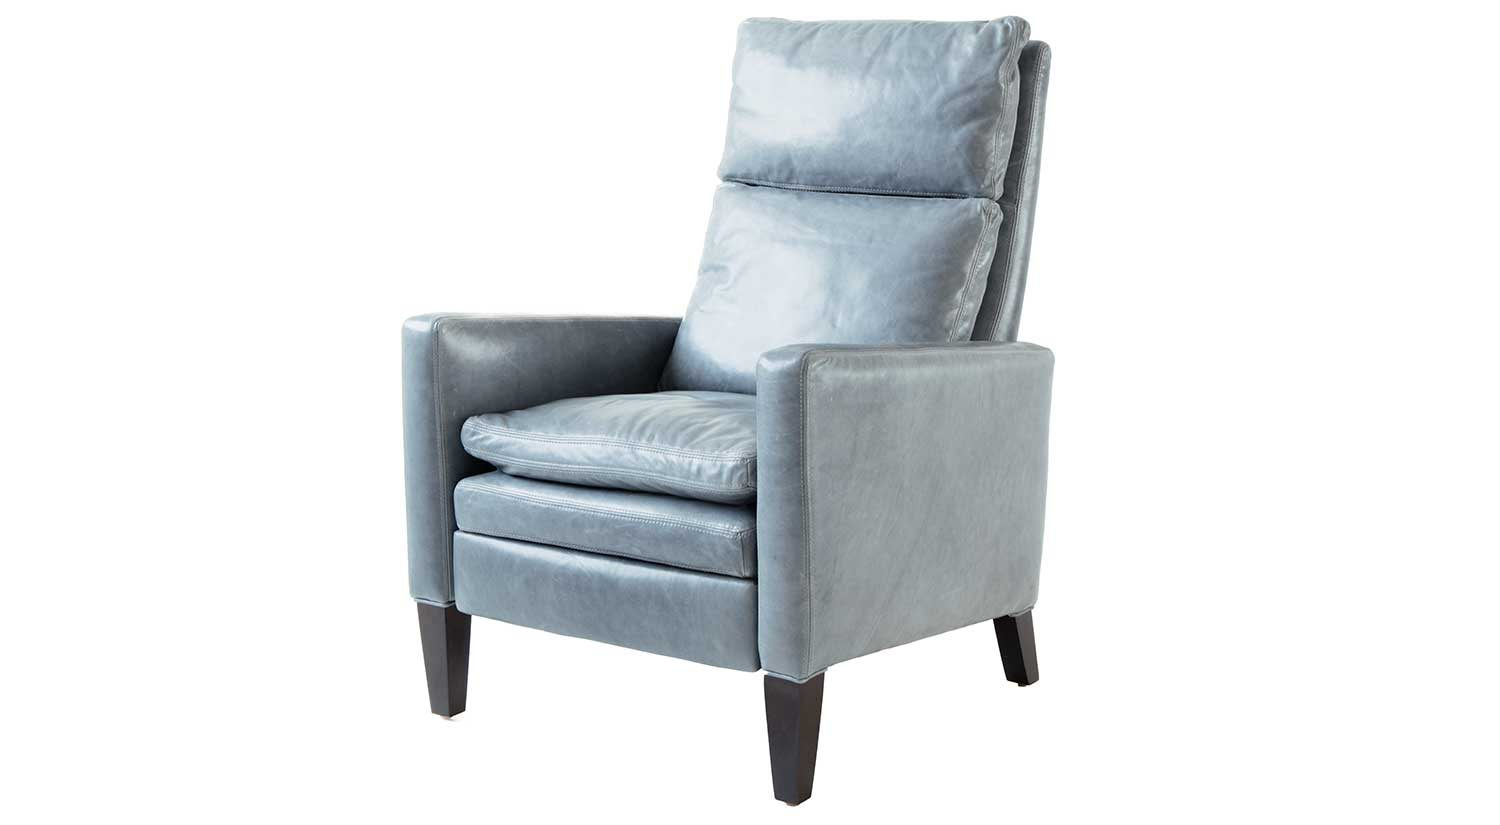 Furniture Stores In Mass Circle Furniture Max Recliner Leather And Fabric Recliers